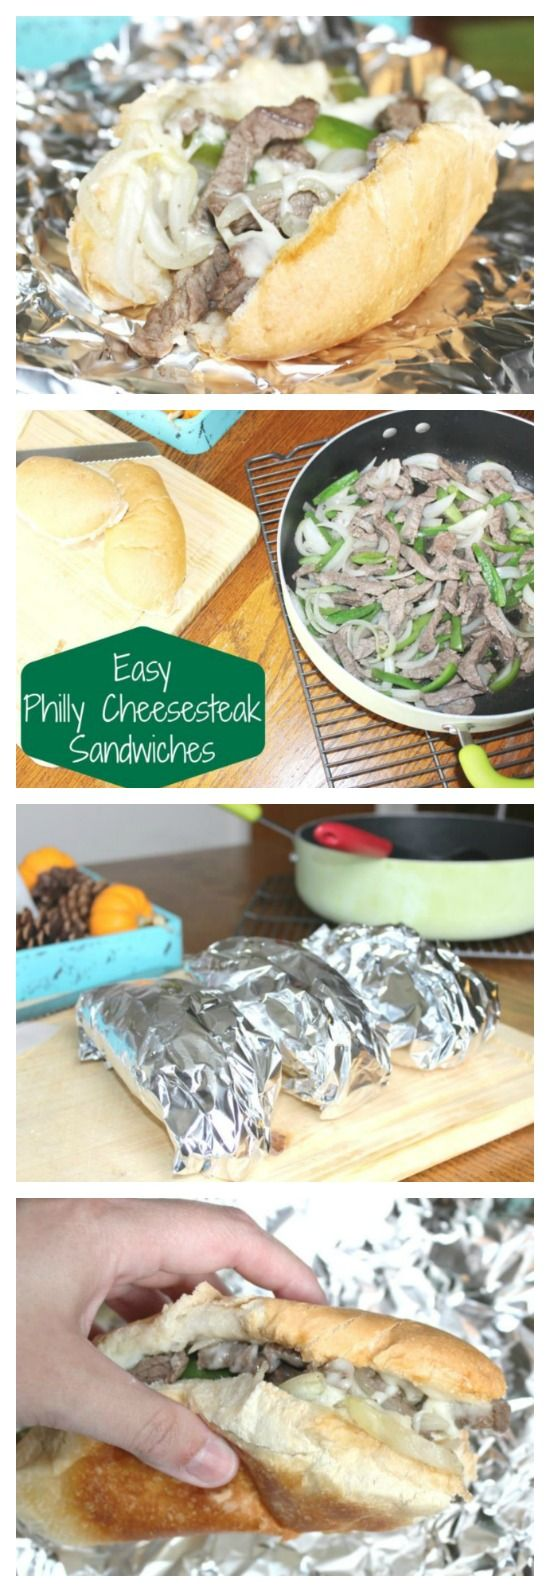 Easy Philly Cheesesteak Sandwiches Recipe to Whip Up for Dinner on Busy Nights! We also have a suggestion to make this a super convenient freezer cooking option!